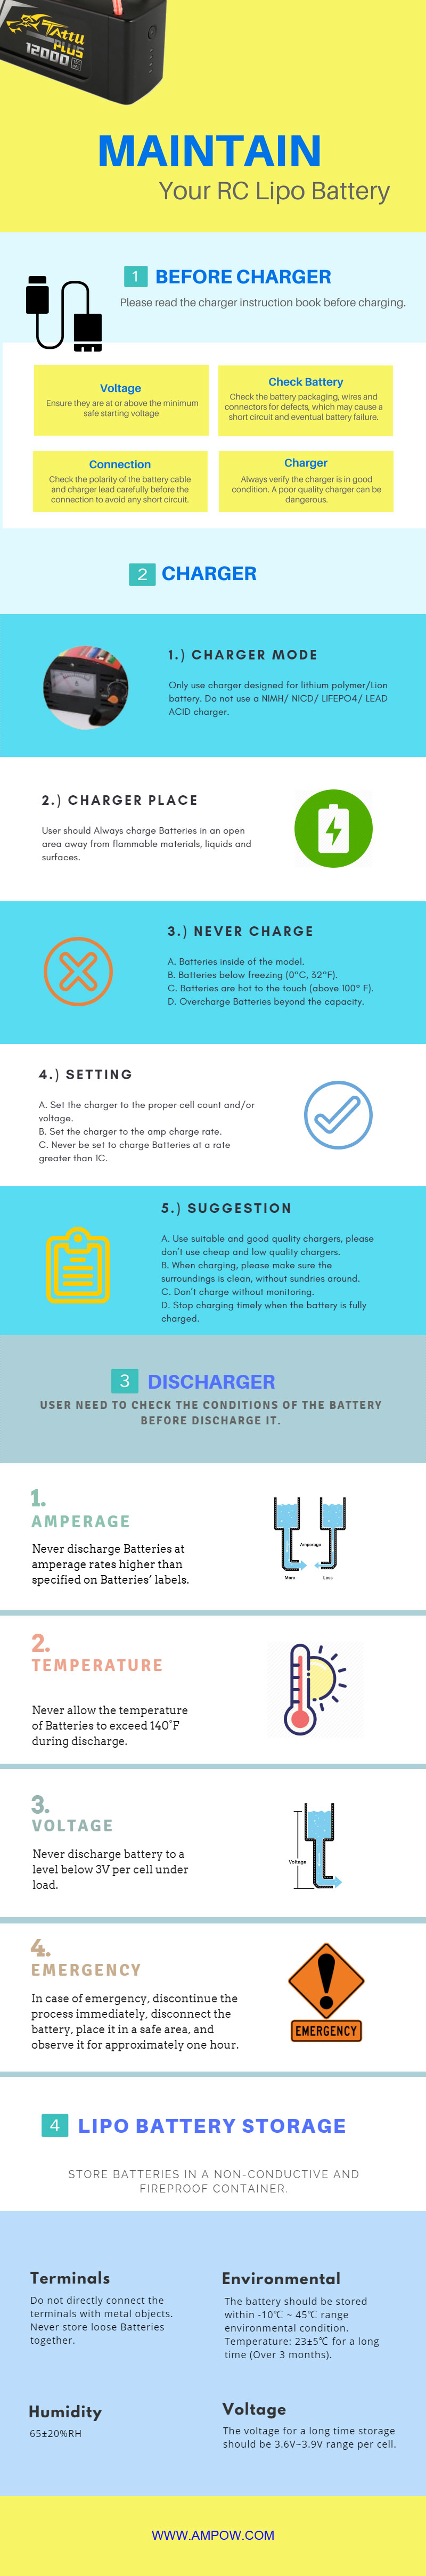 Lipo Battery Maintenance Infographic